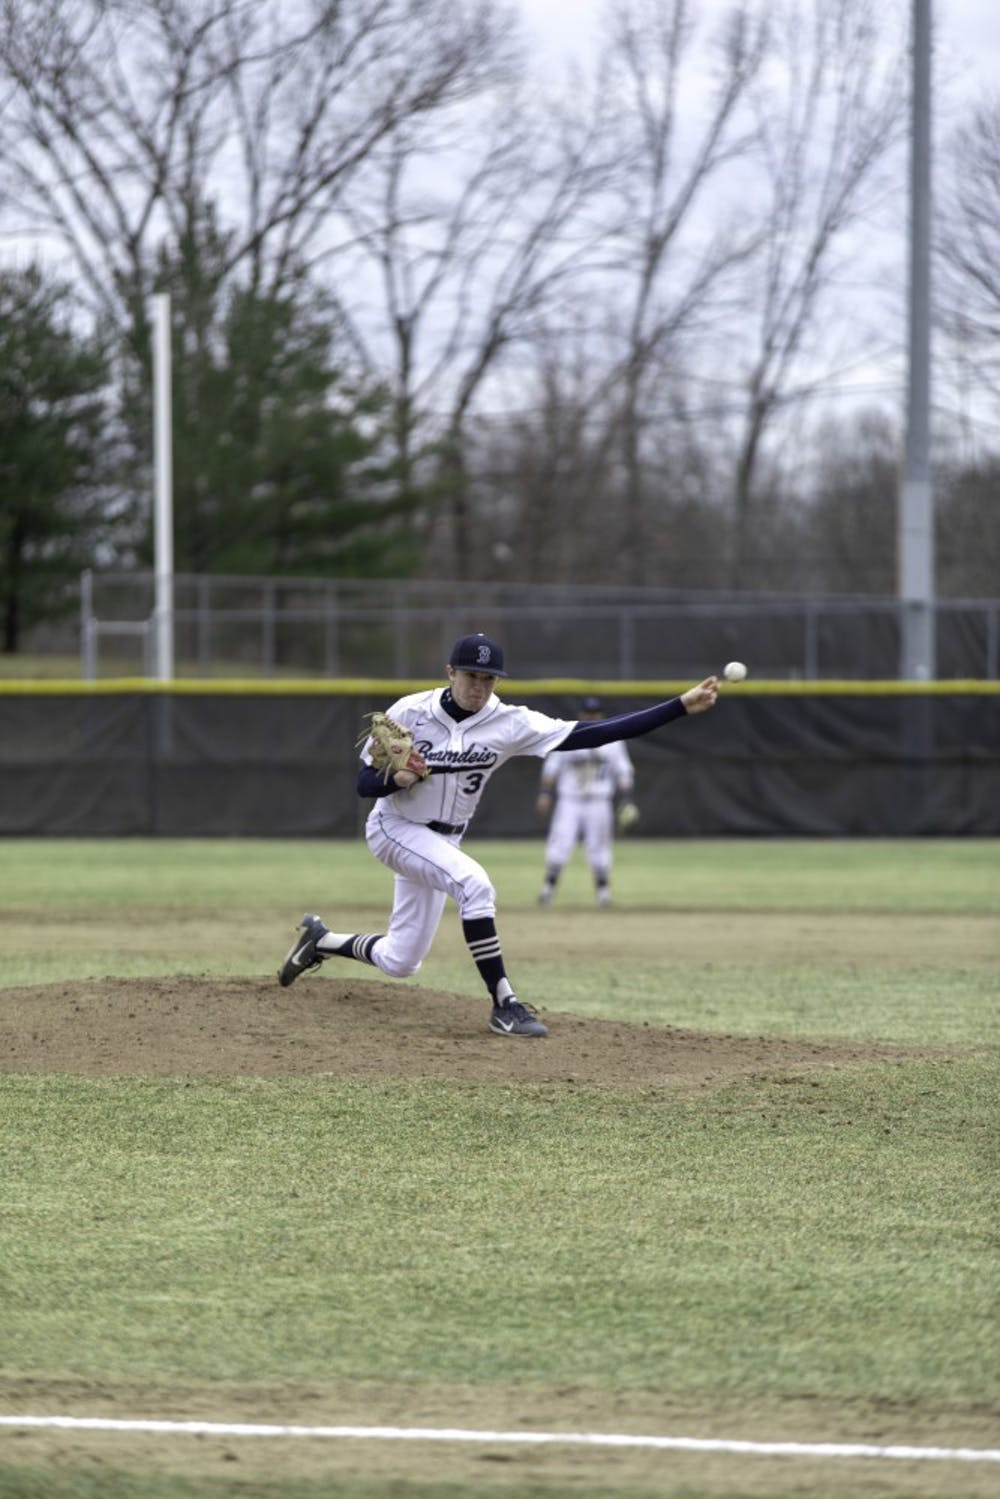 baseball-m-vs-suffolk-ys1-3-21-19-0096